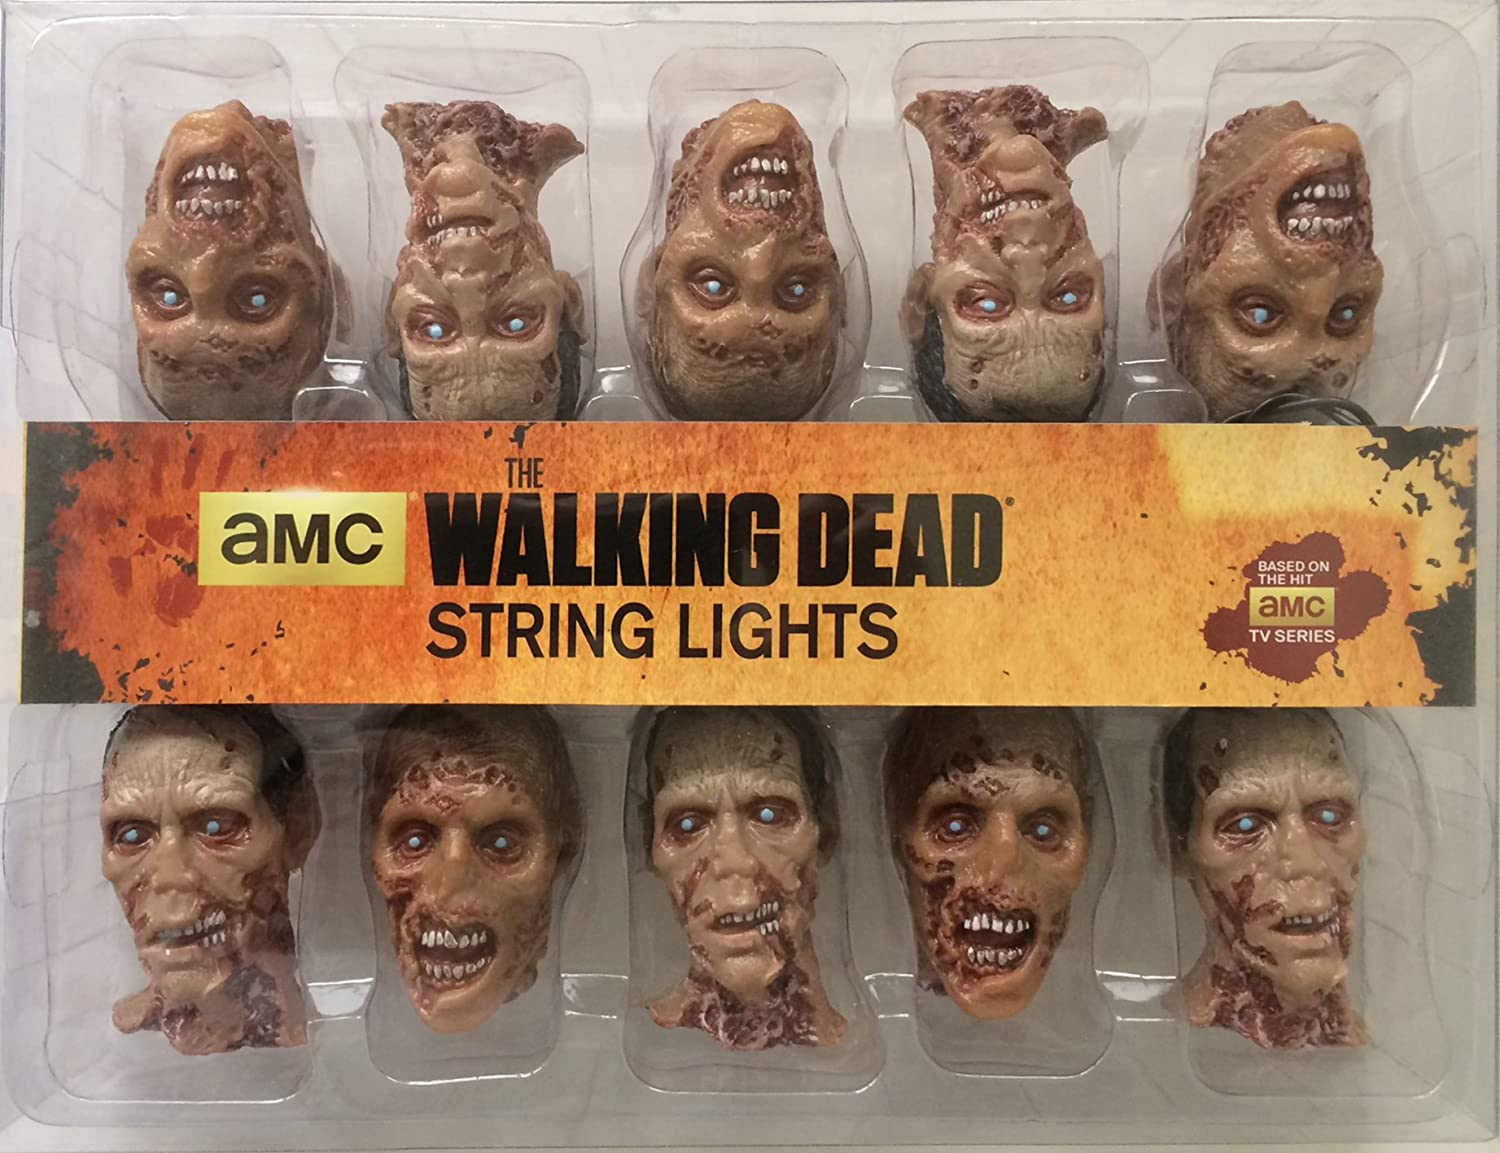 The Walking Dead String Lights